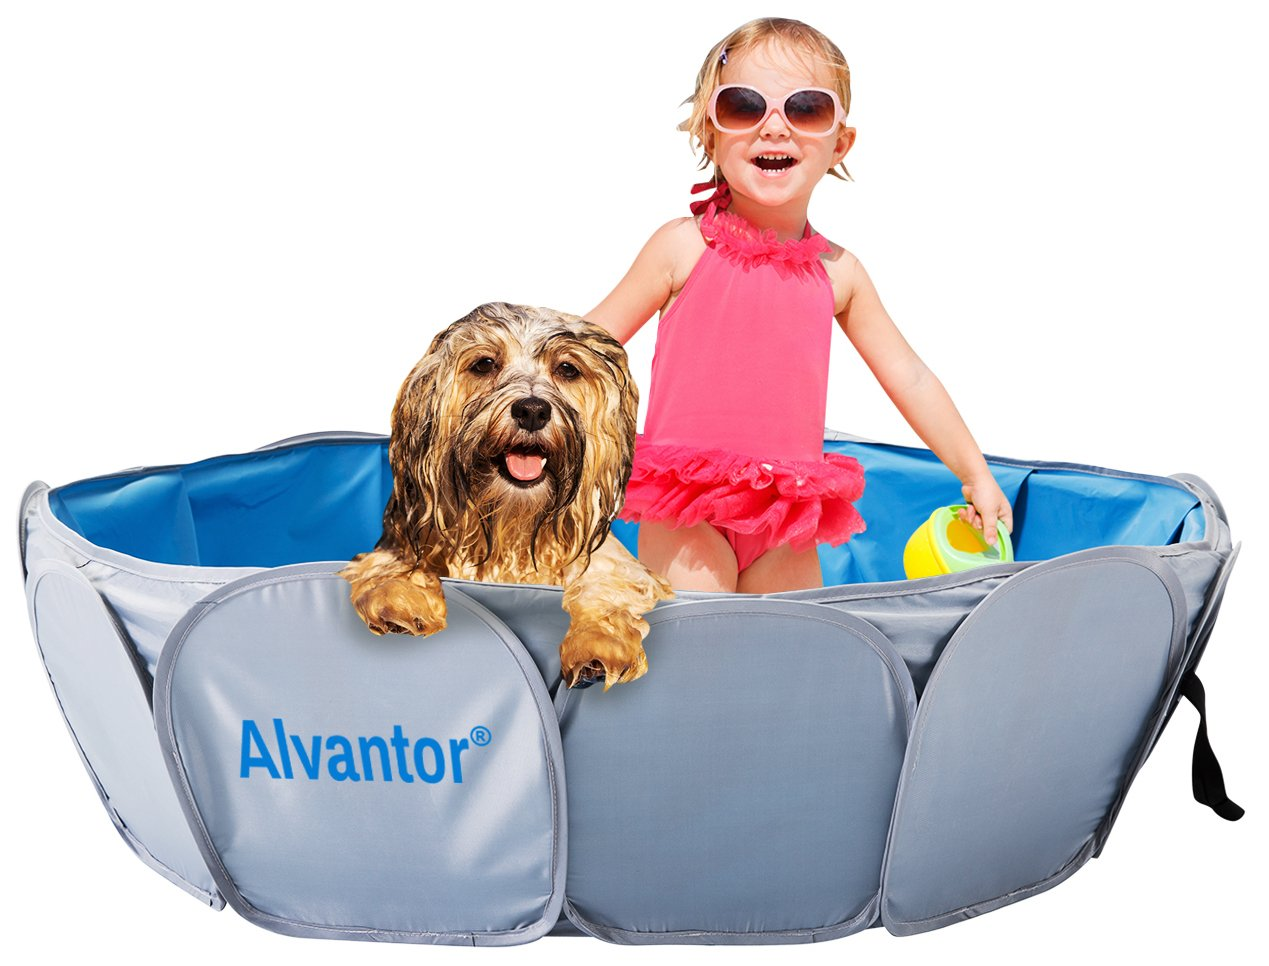 """Alvantor Pet Swimming Pool Dog Bathing Tub Kiddie Pools Cat Puppy Shower Spa Foldable Portable Indoor Outdoor Pond Ball Pit 42""""x12 Patent Pending"""